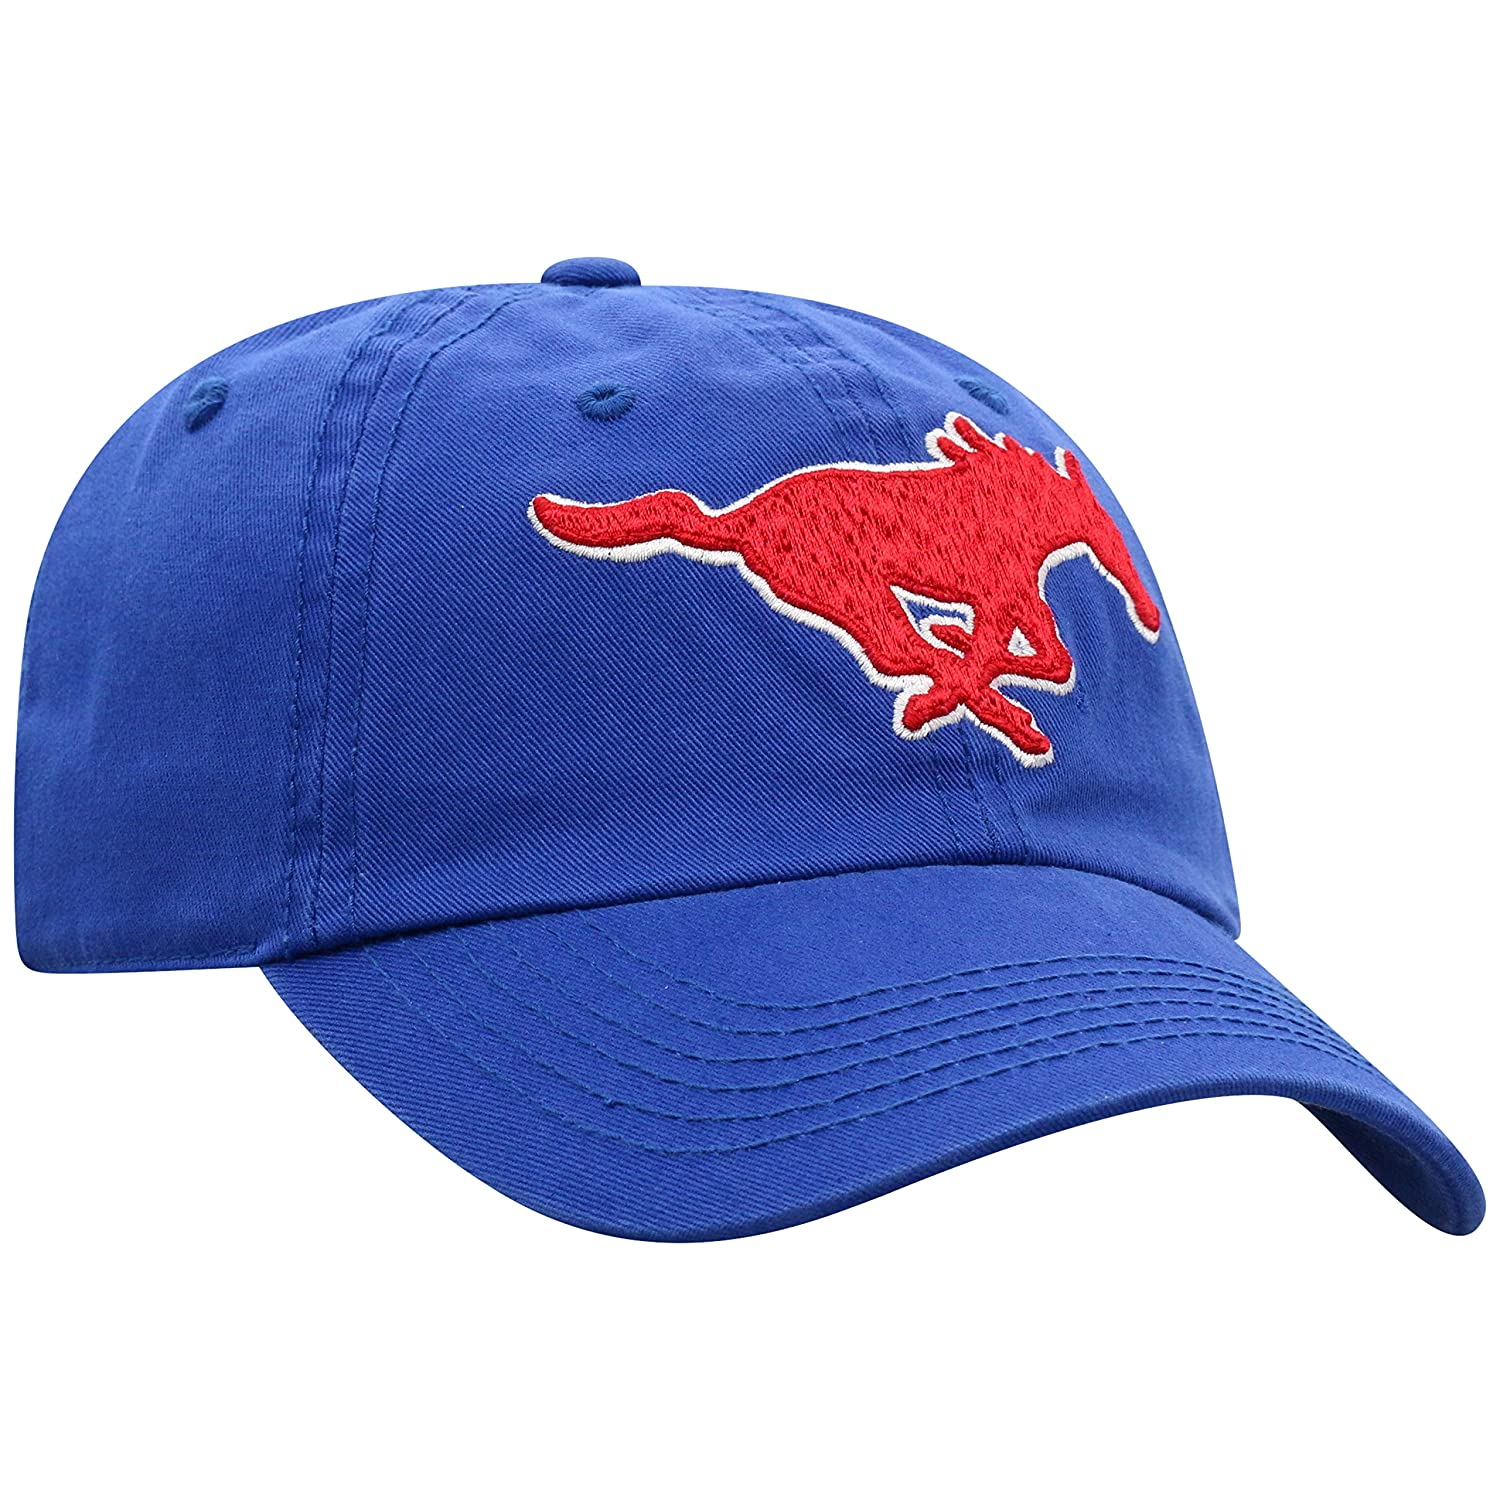 Royal, Top of the World SMU Mustangs Enzyme Washed Adjustable Hat